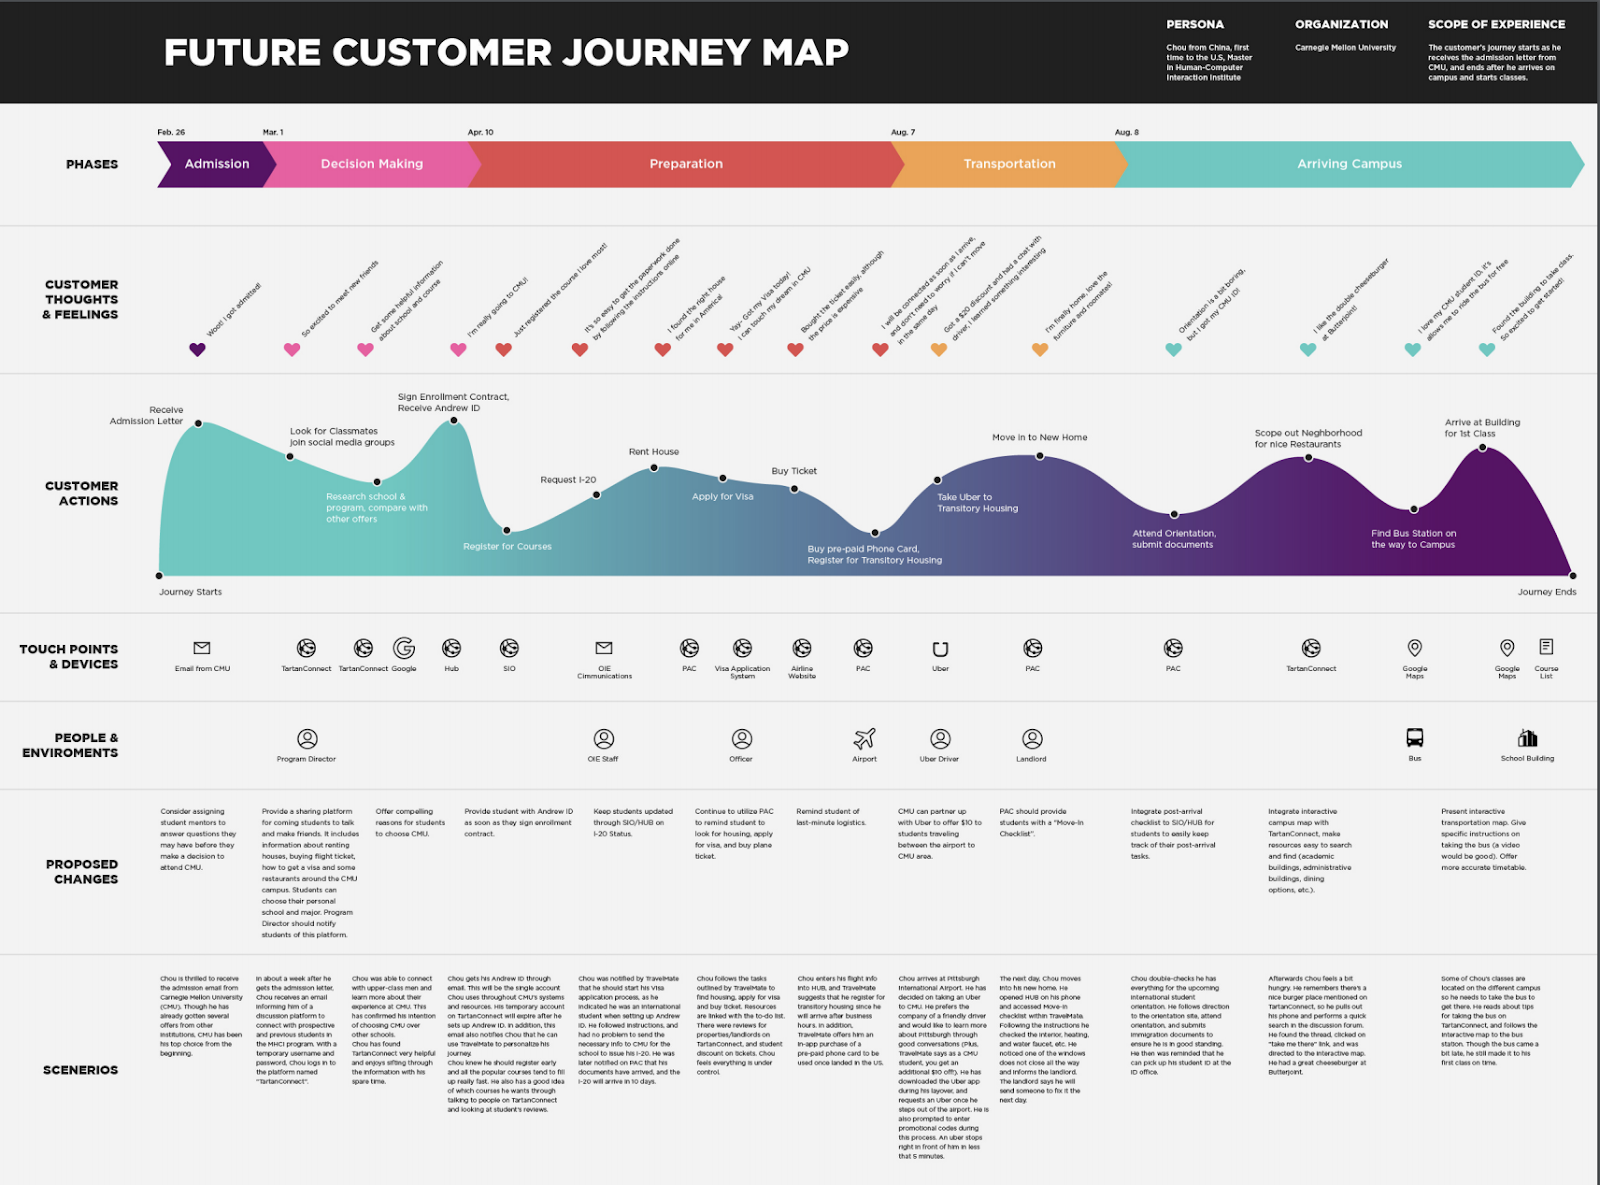 Example of a future customer journey map from Bright Vessel. At the top is the phases of the customer journey, in different colors. In the second column is customer thoughts and feelings, then customer actions. Then touch points and devices, people and environments, proposed changes, and possible scenarios.